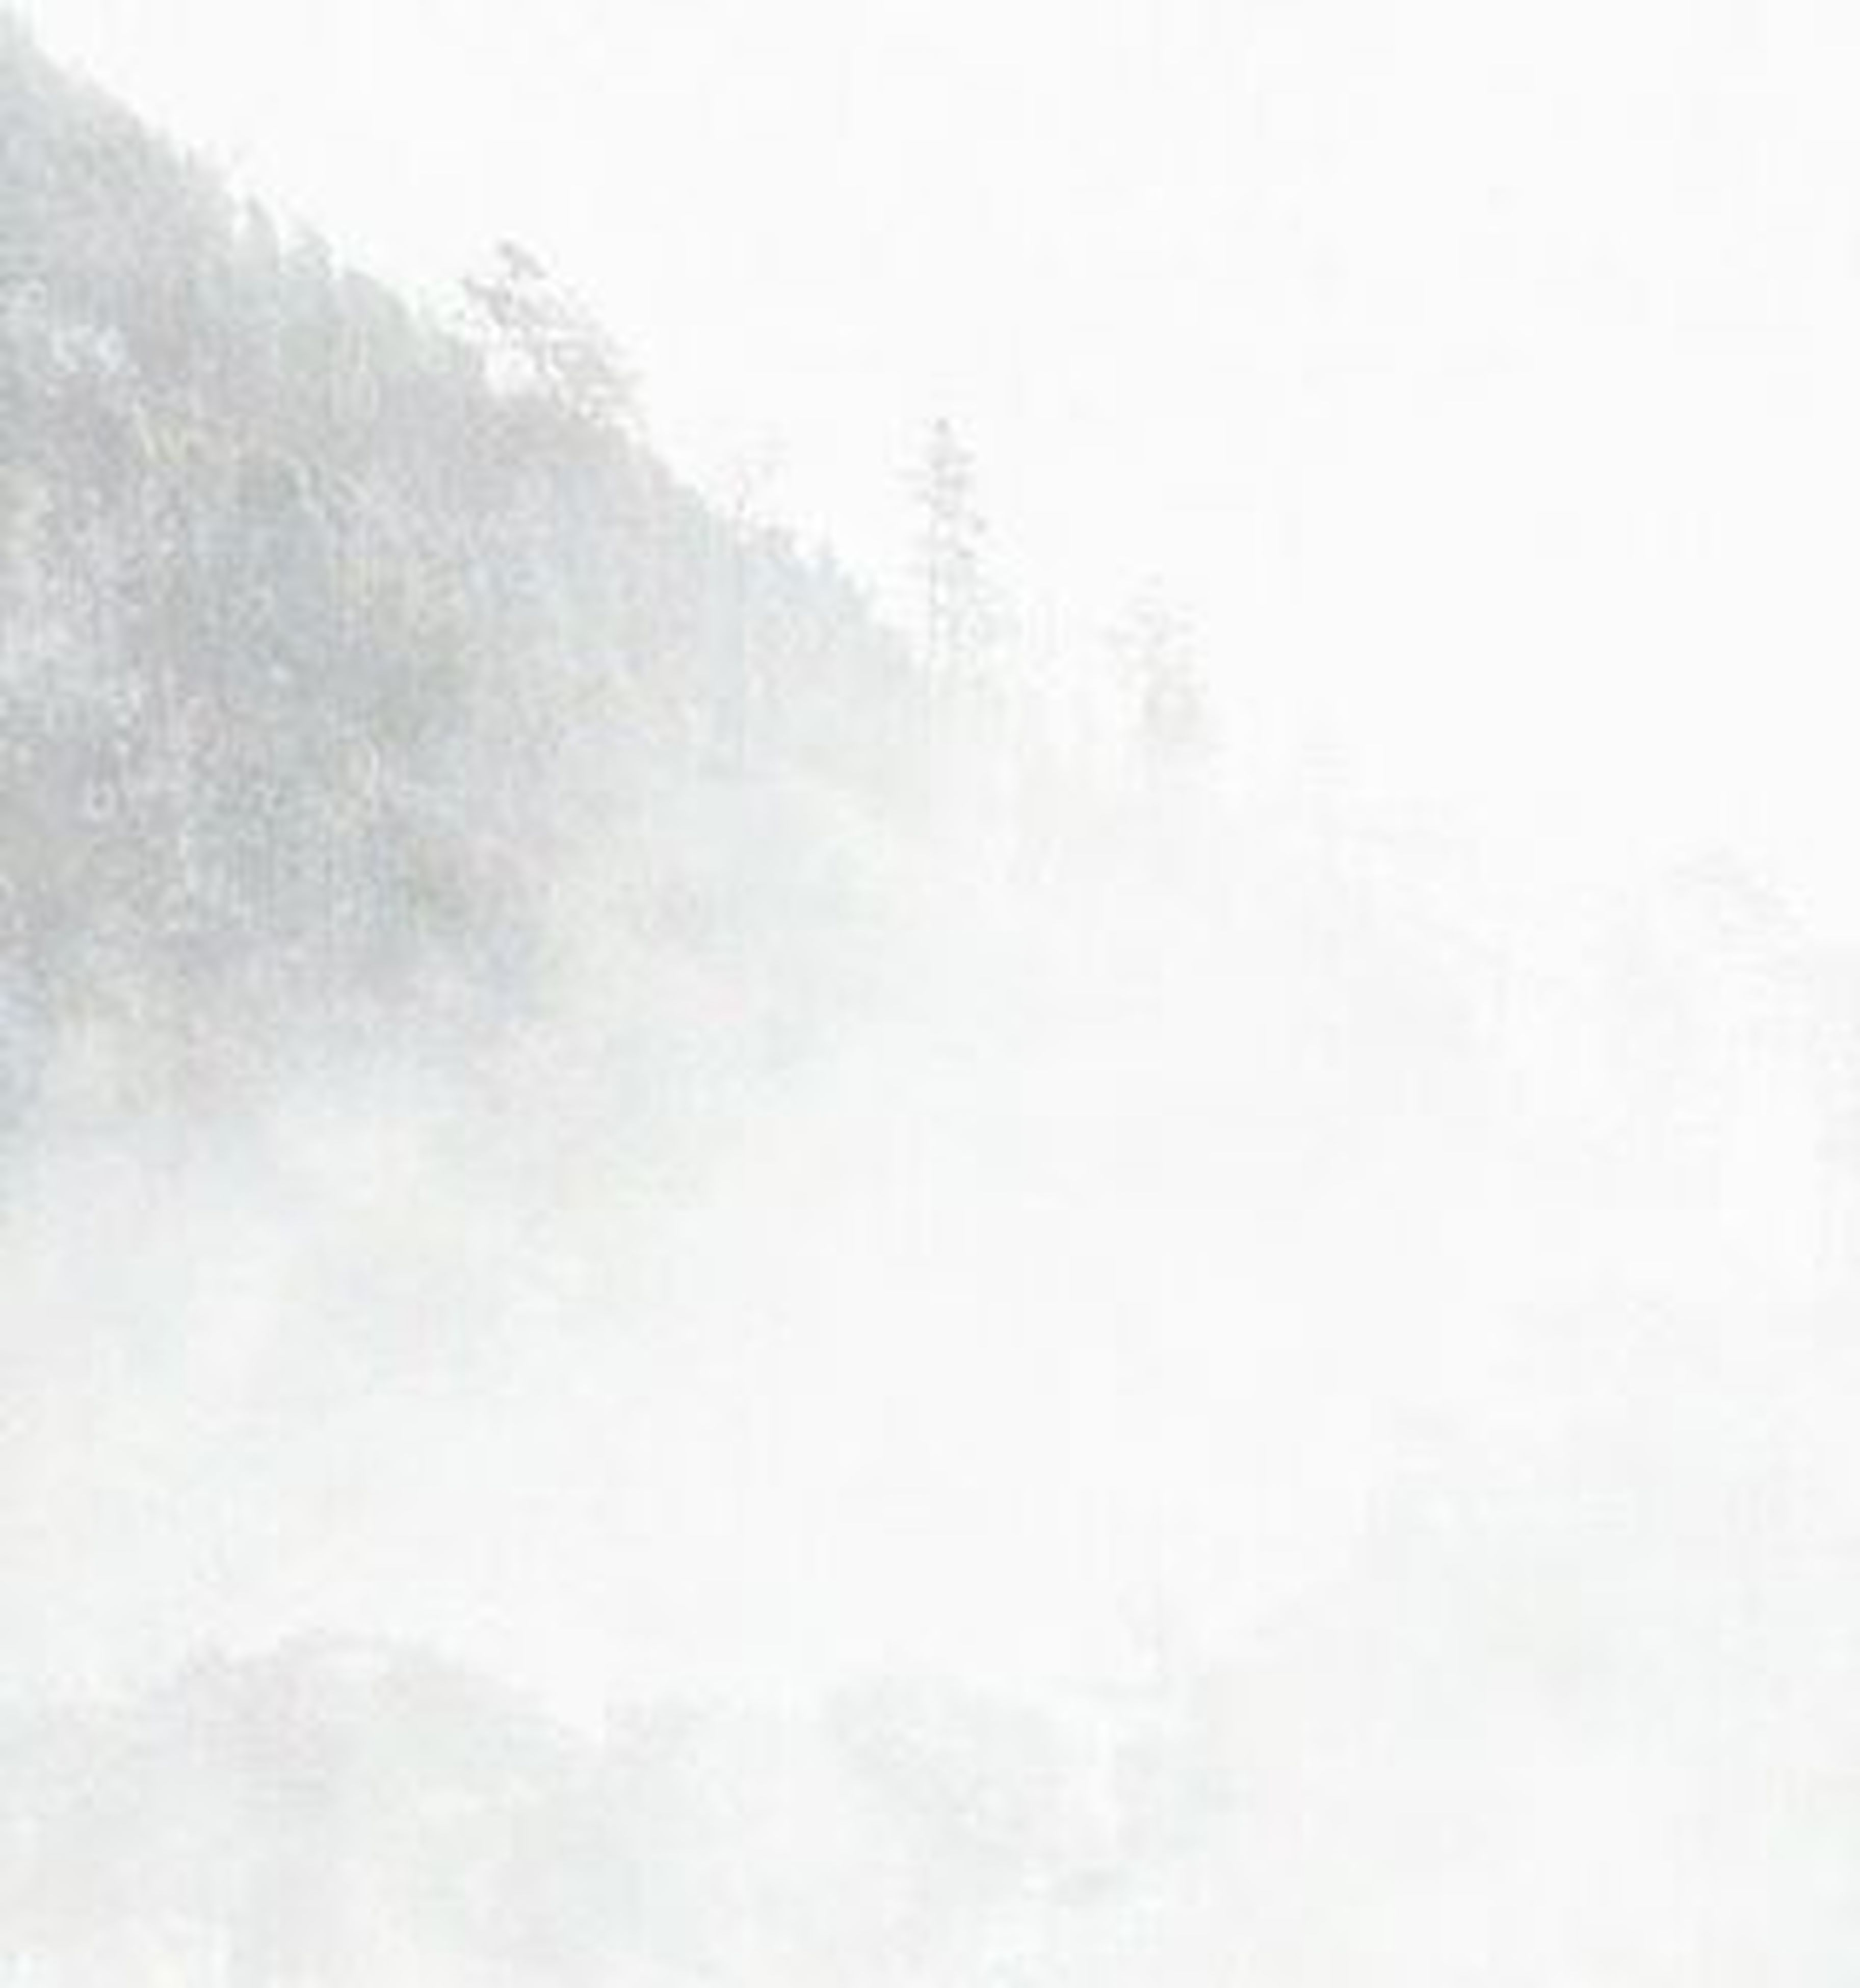 fog, weather, foggy, copy space, tranquility, winter, beauty in nature, nature, cold temperature, tranquil scene, low angle view, scenics, white color, snow, covering, season, tree, sky, day